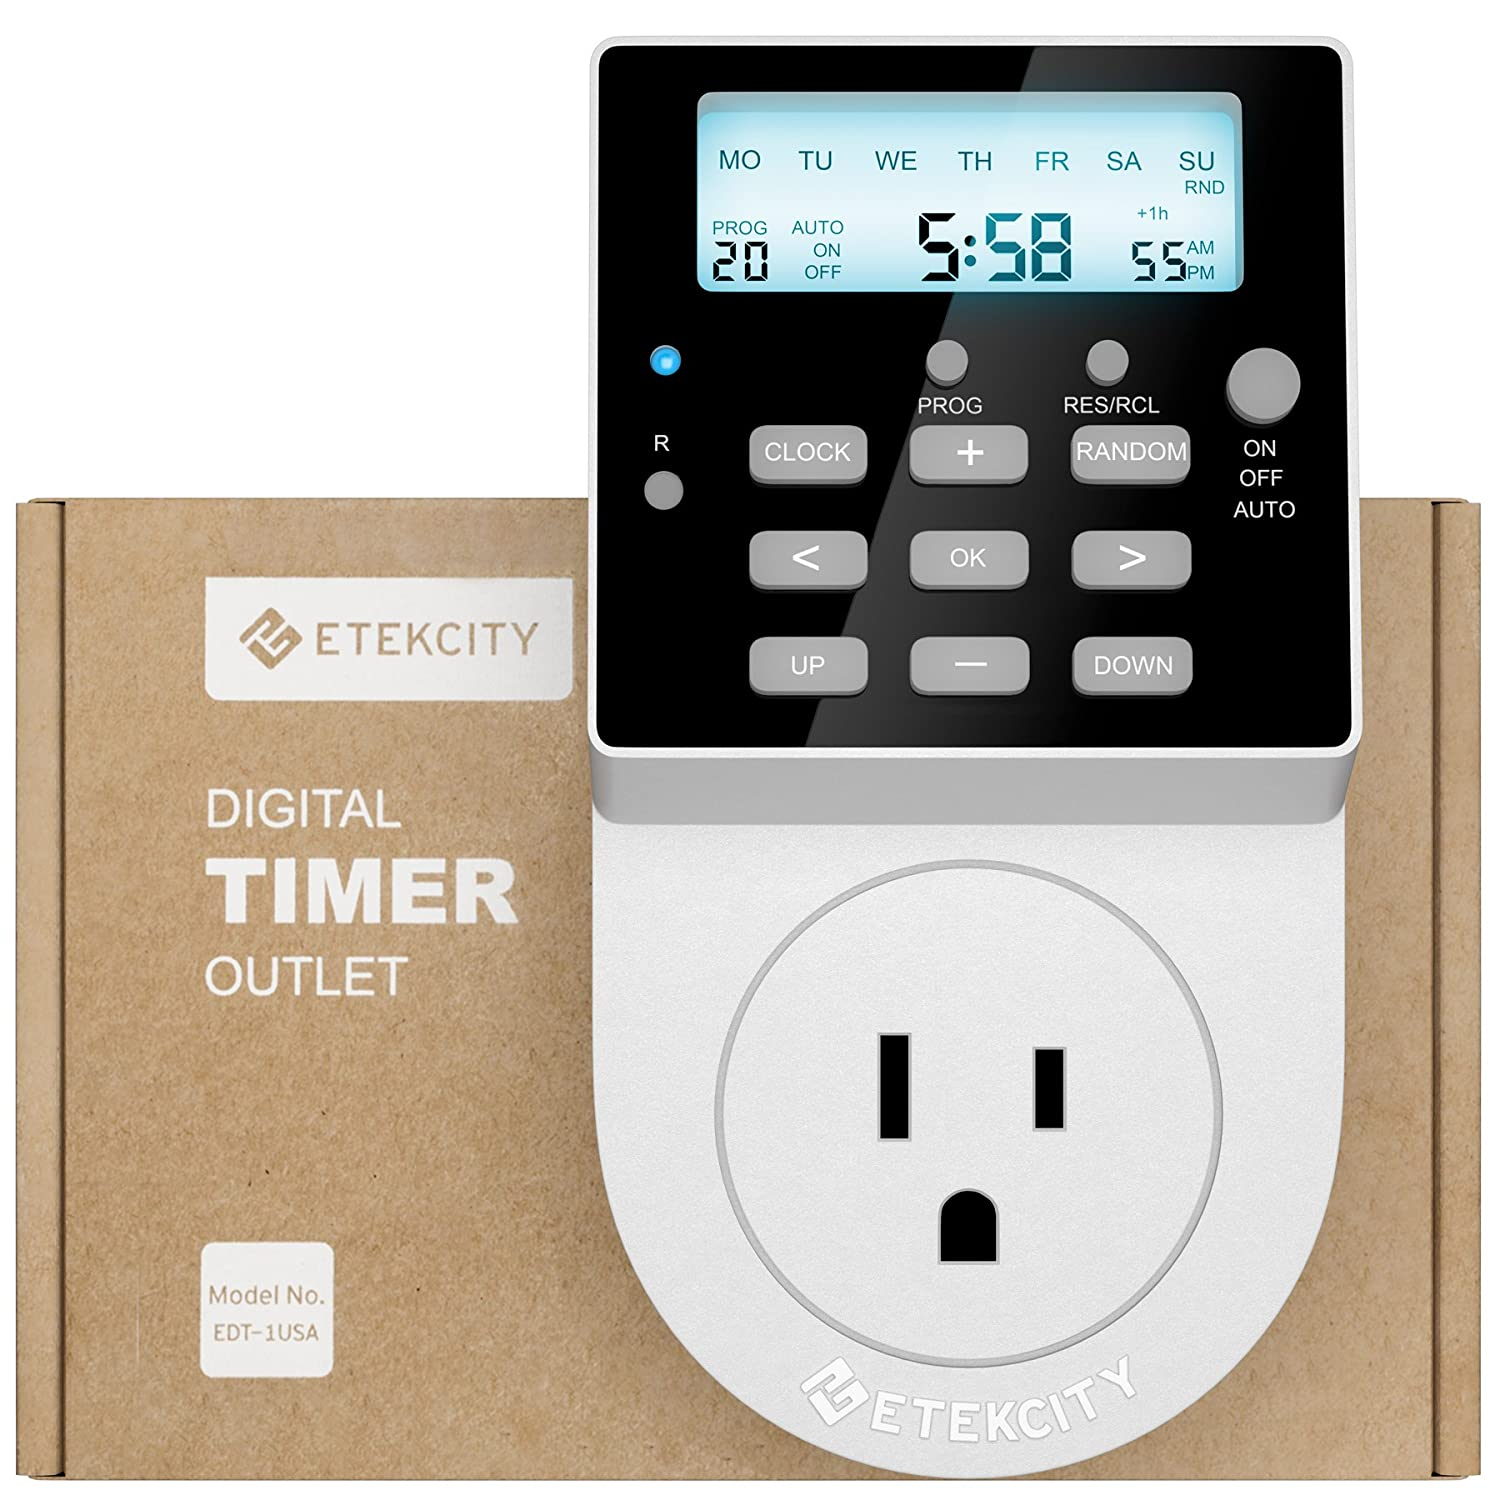 Etekcity Light Timer Outlet - $13.99 (Reg. $29.99)